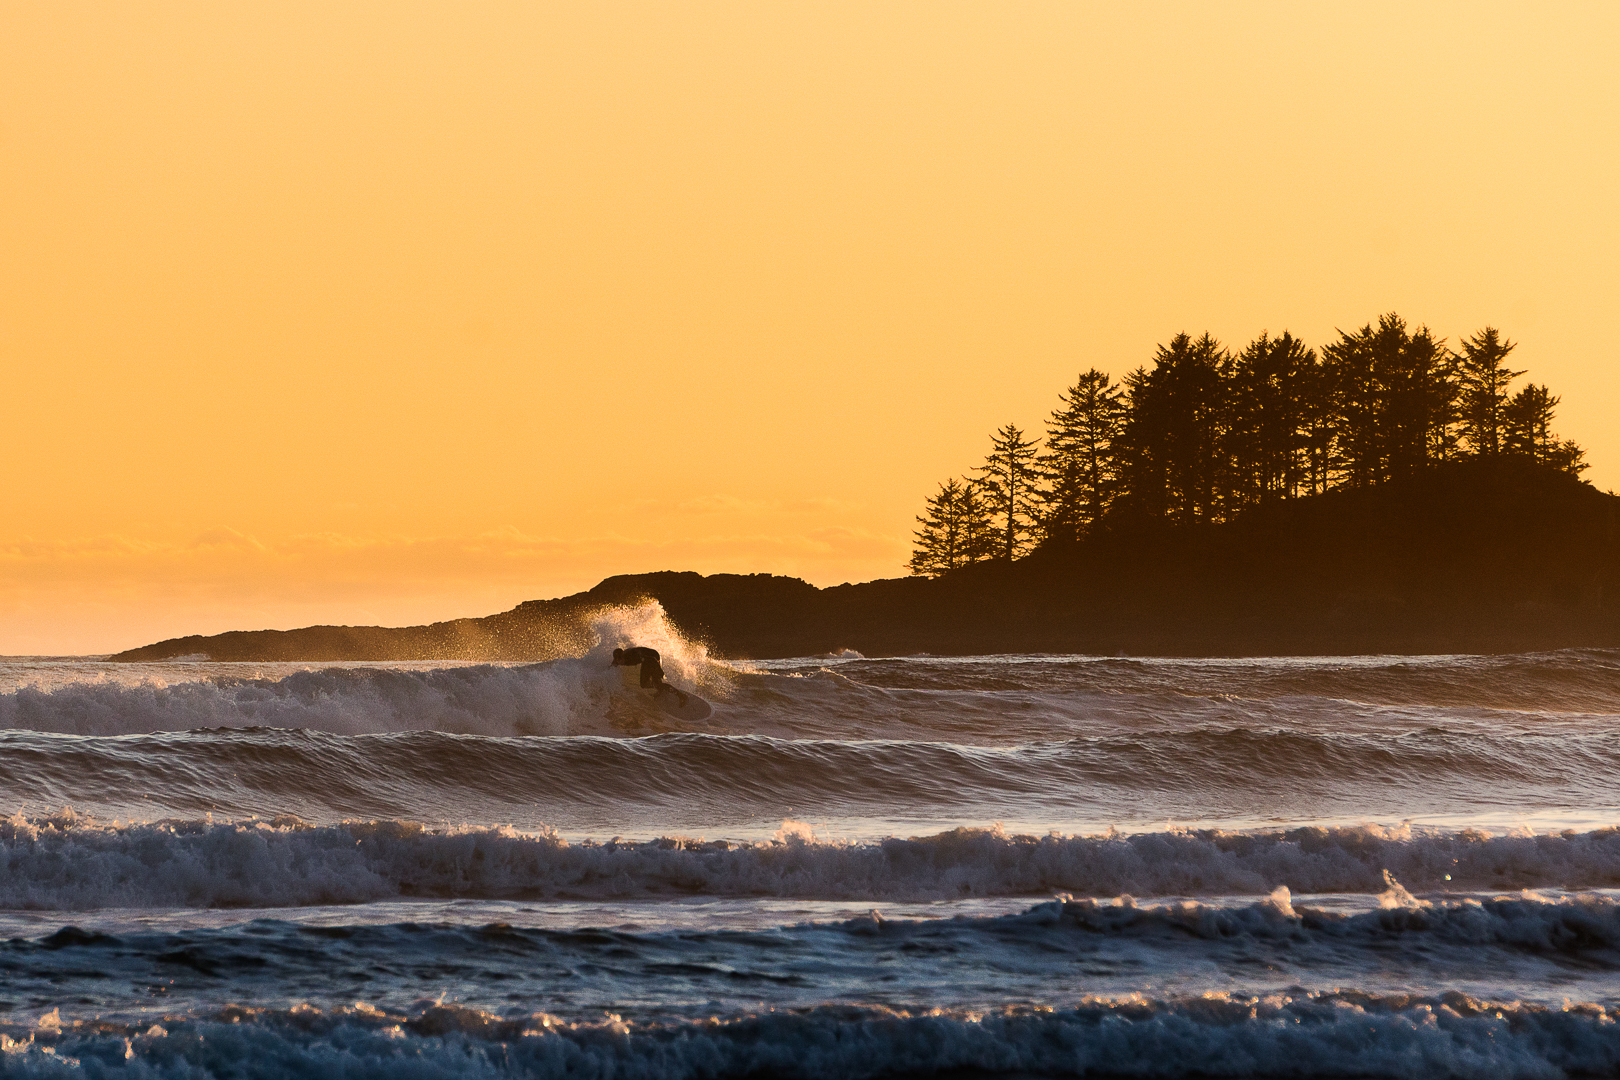 Coldwater surfing, Long Beach, Tofino, British Columbia